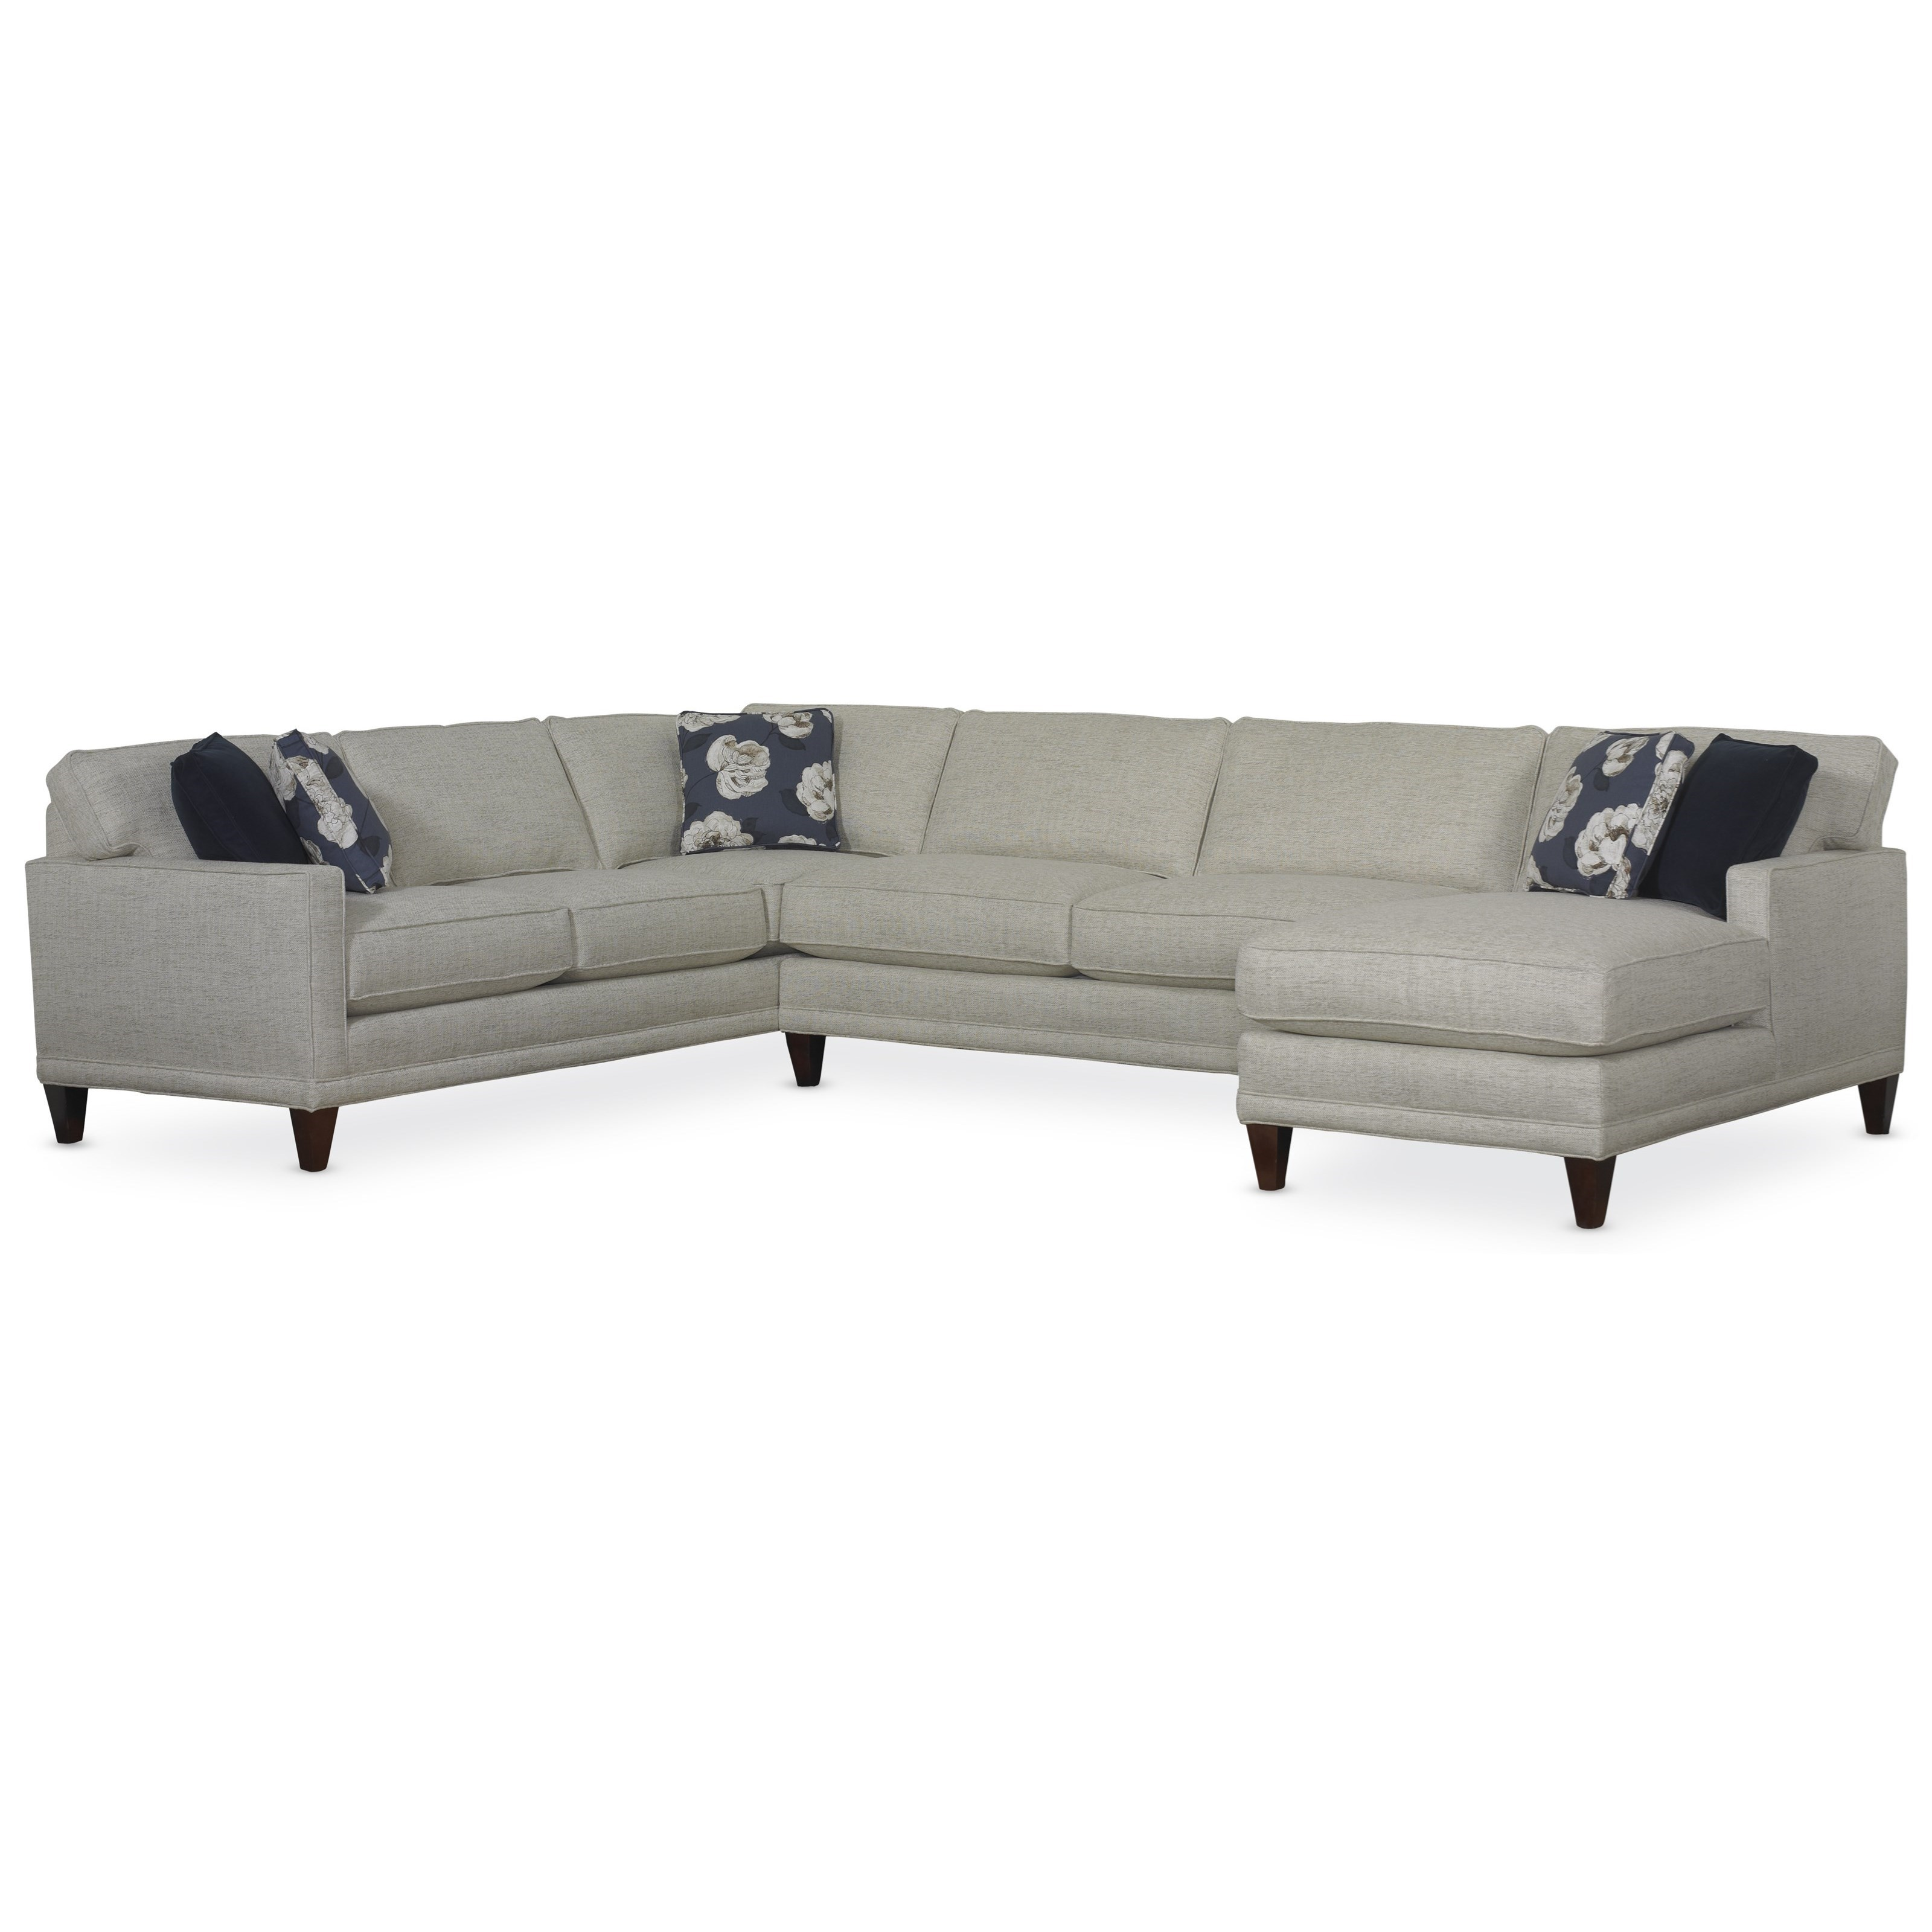 Superieur Rowe TownsendThree Piece Sectional Sofa Group ...